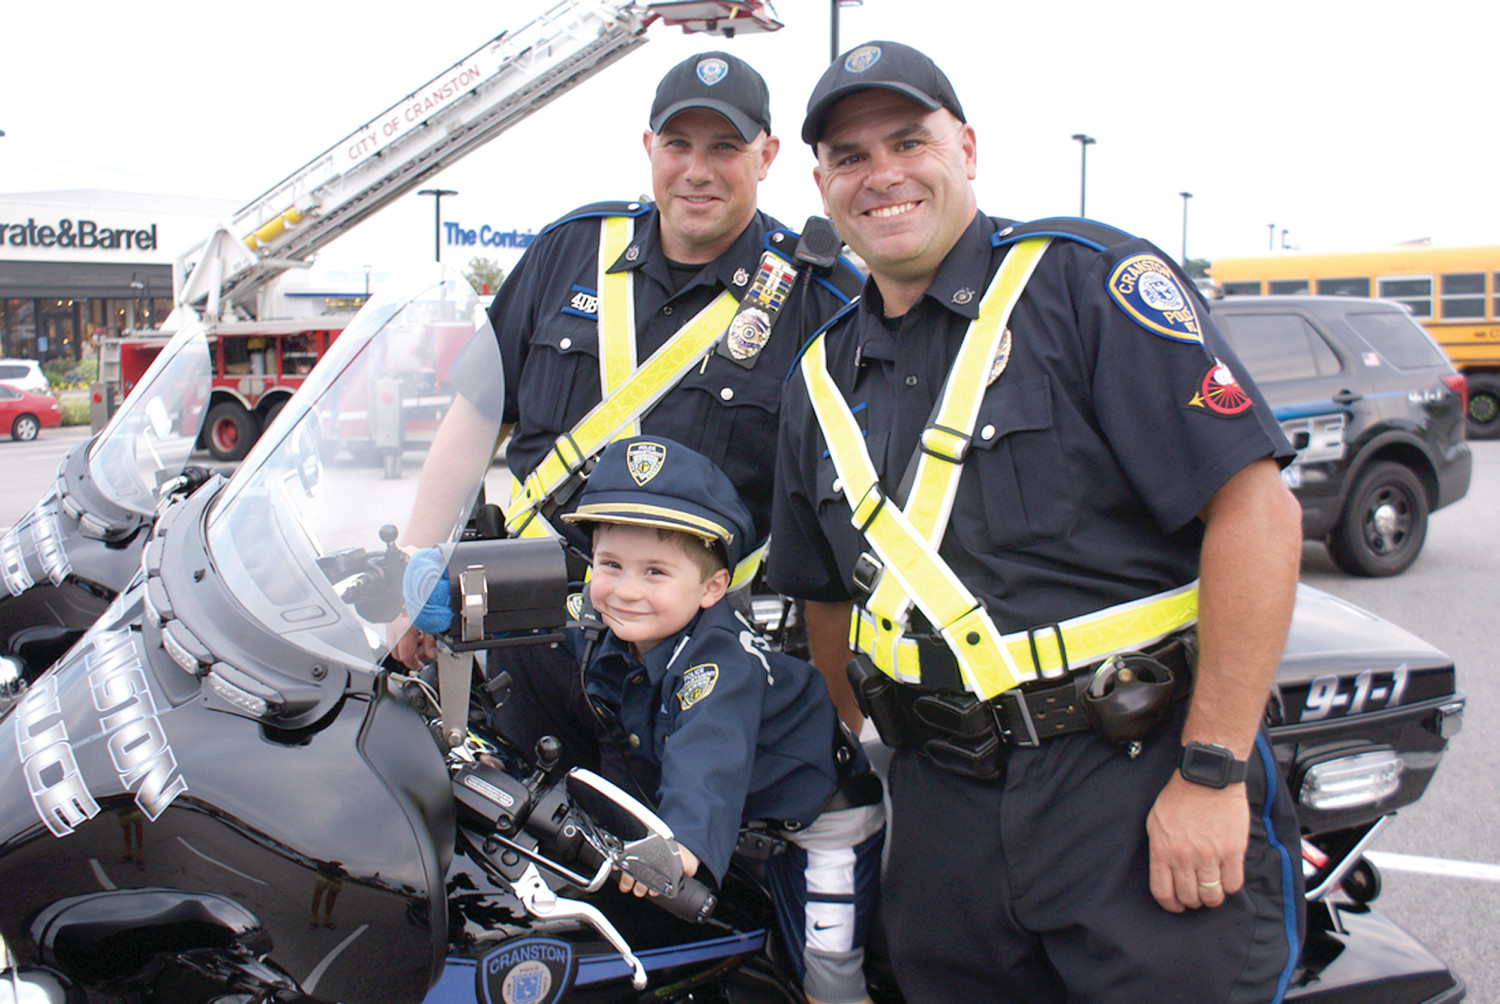 """TRAINEE"": Matthew Mazzola, age 3, enjoyed his time on a Cranston Police Department motorcycle during National Night Out in Garden City as Inspectors Andrew DeCosta and Peter Leclerc stand by him."